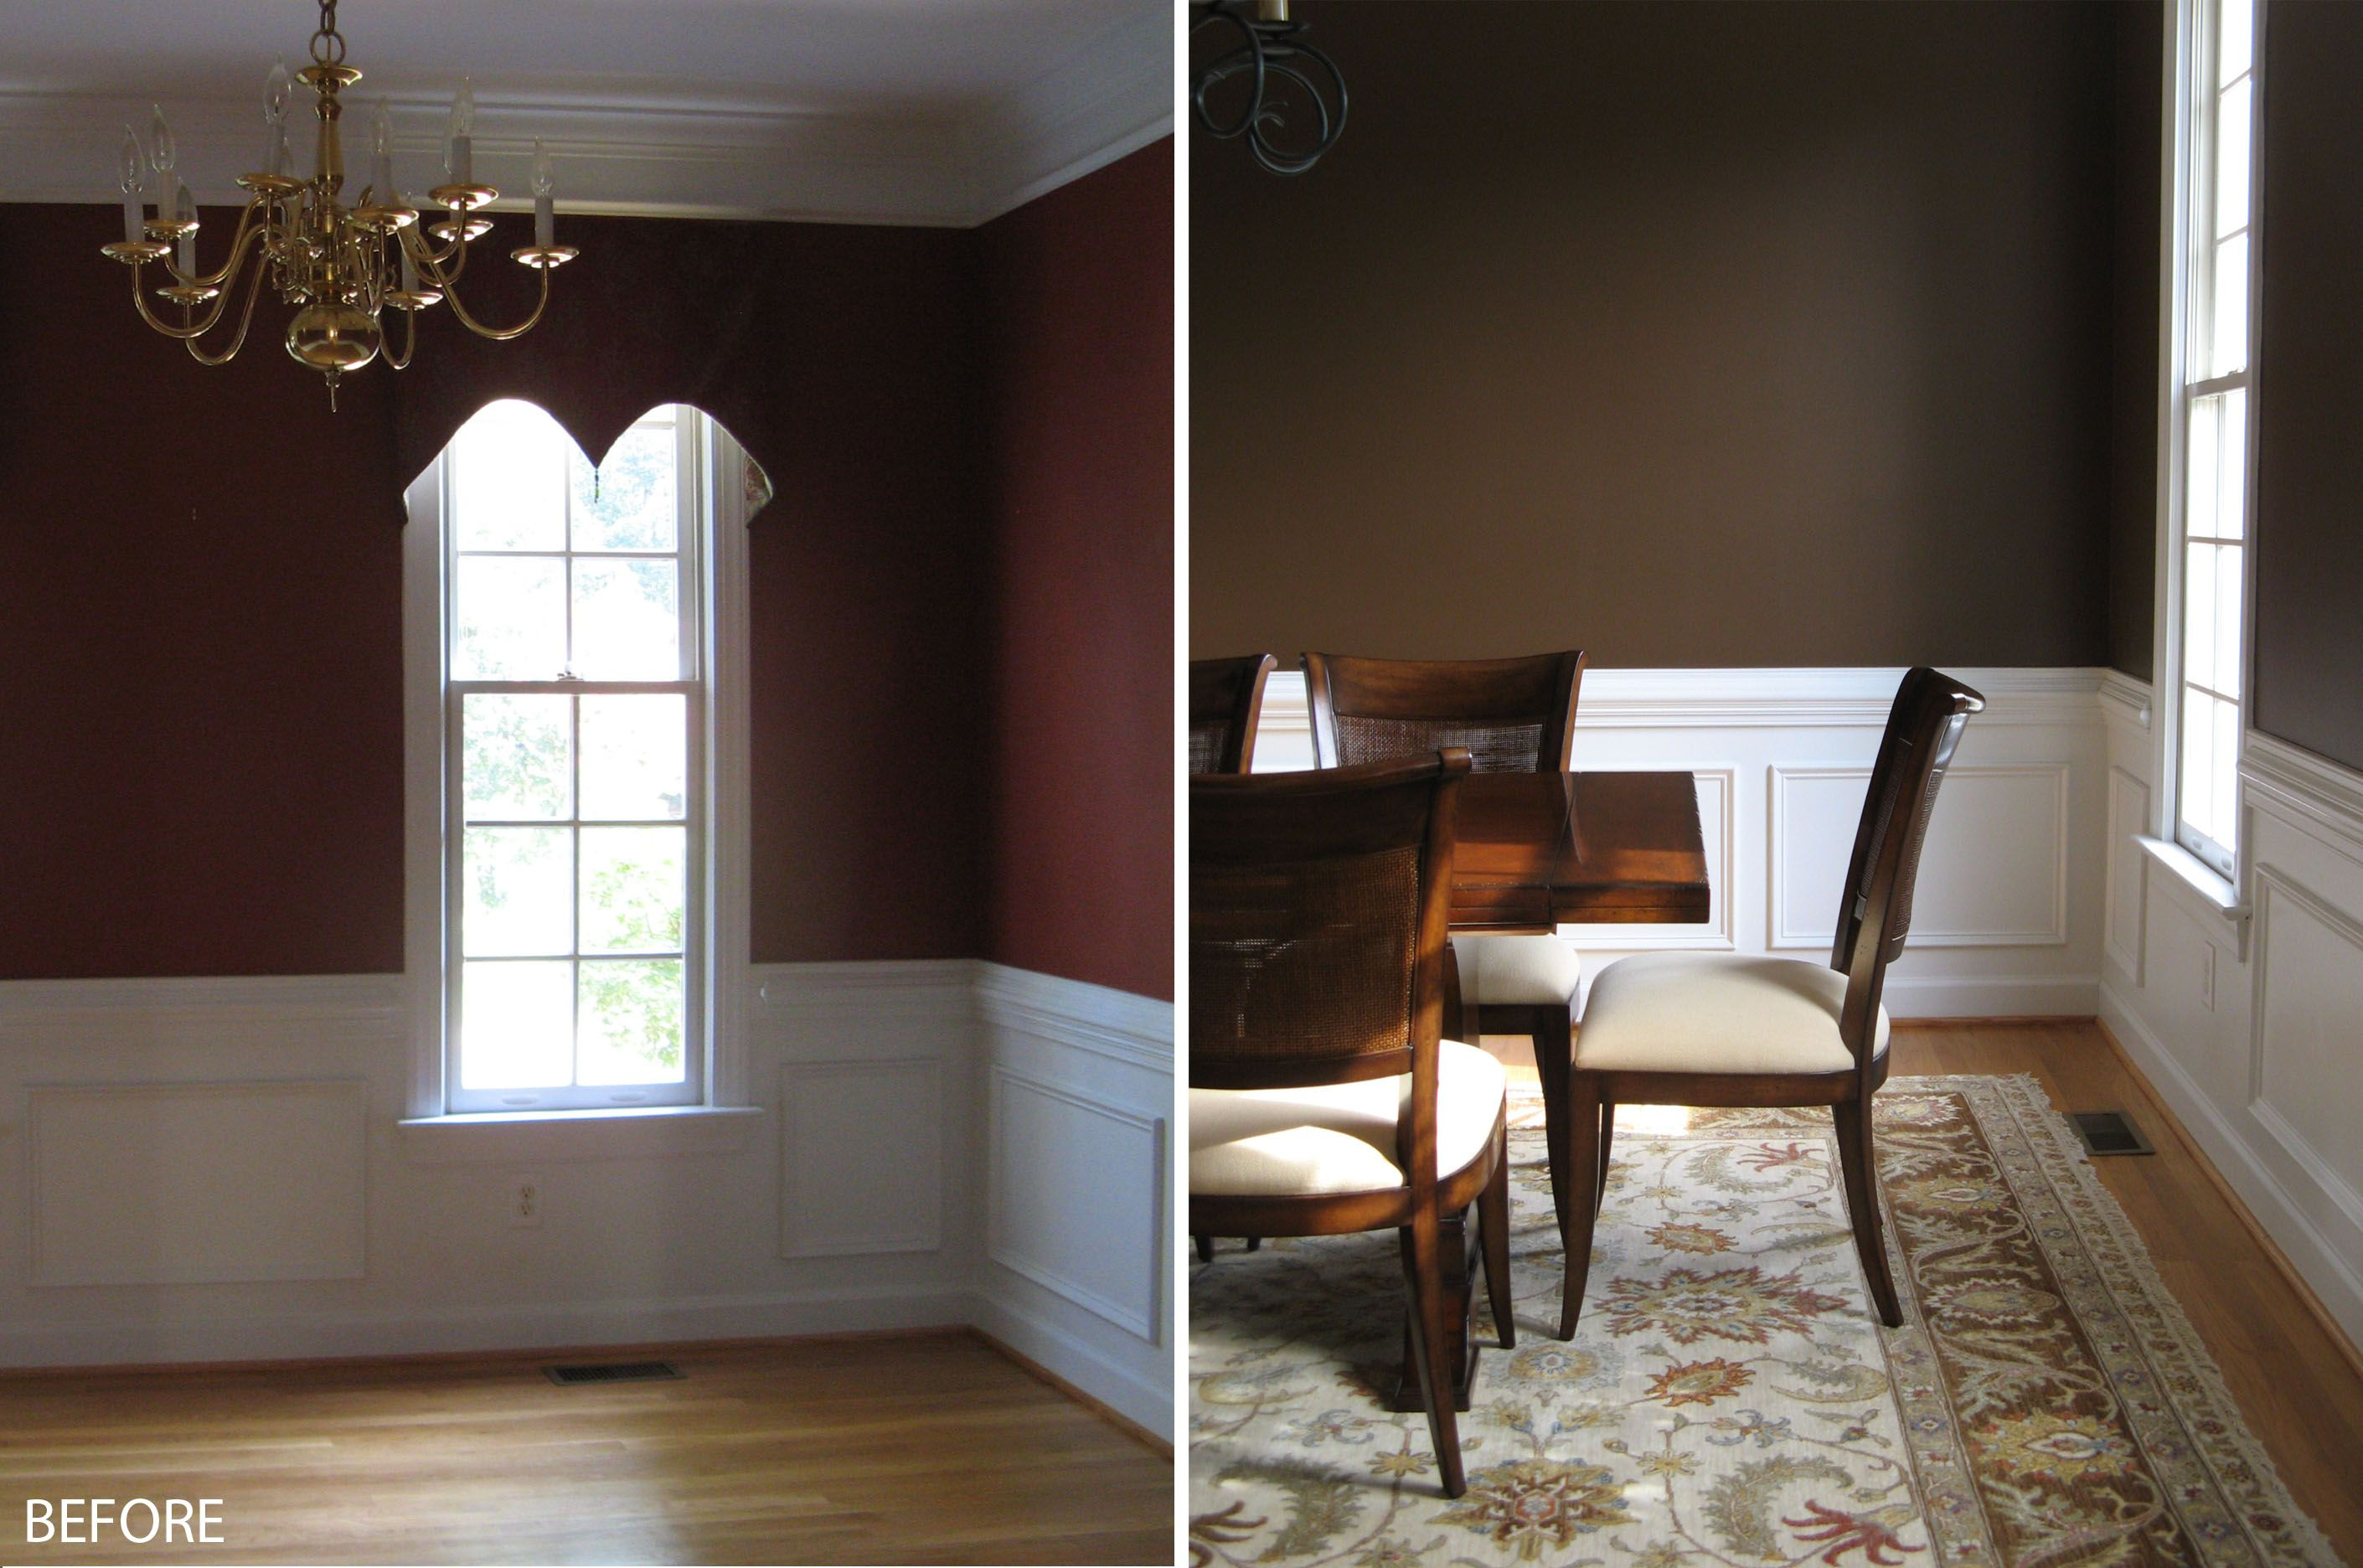 The dining room wall painting ideas above is used allow